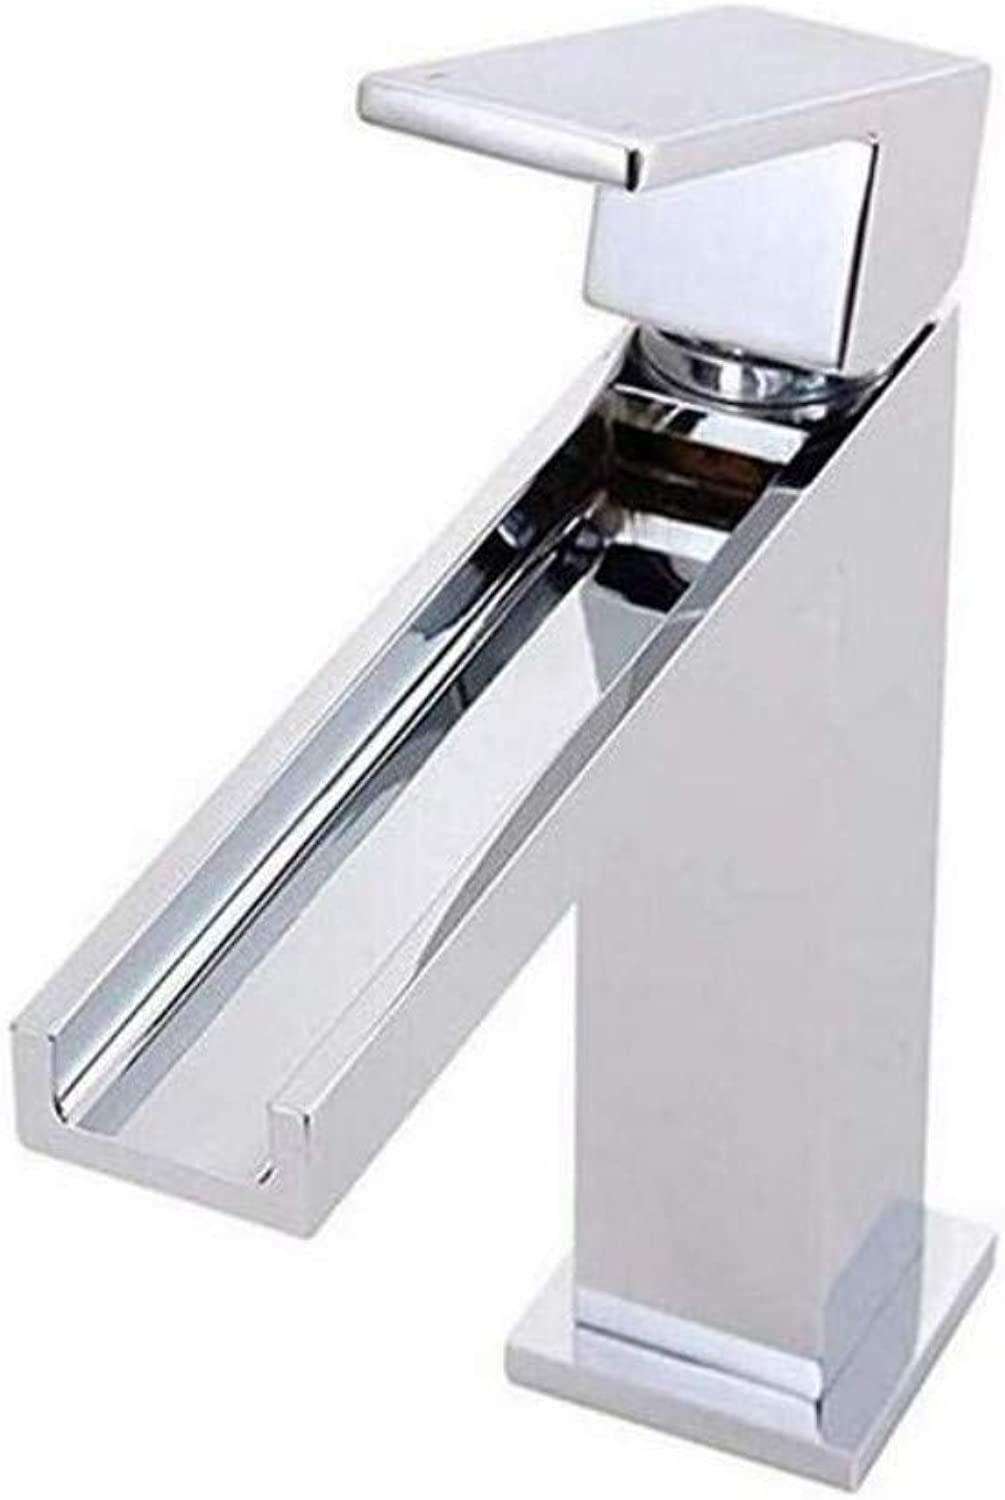 Taps Kitchen Sinkkitchen Sink Taps Bathroom Taps Tap Copper Single Hole Single Handle Hot and Cold Water